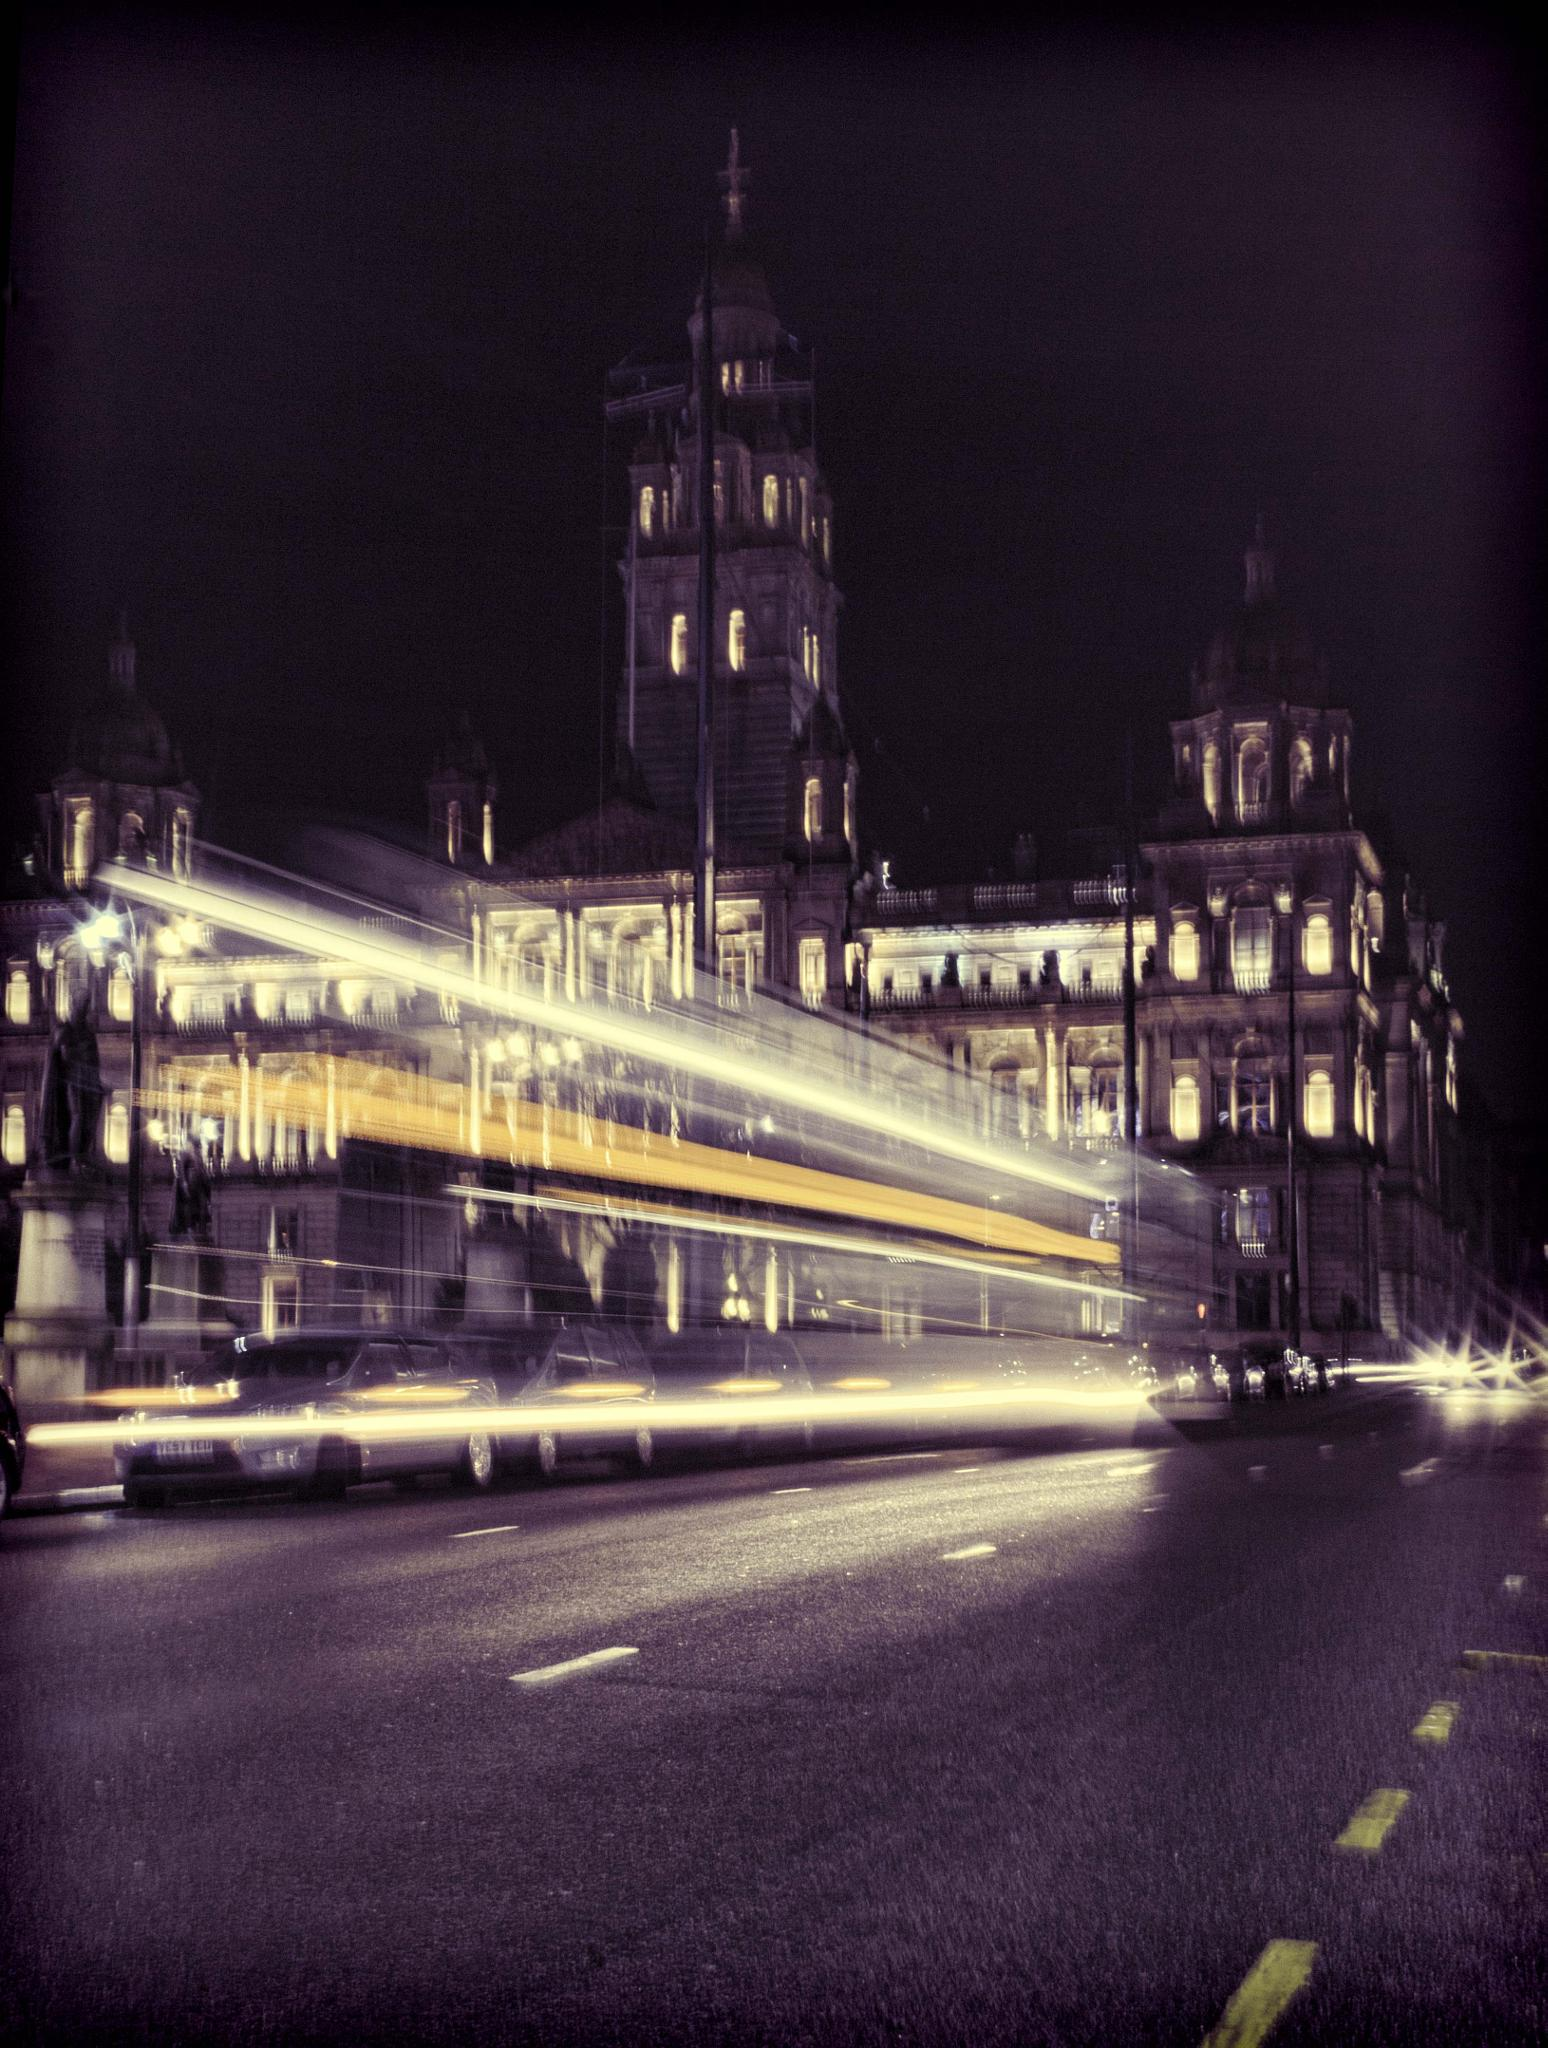 Glasgow George Square at Night by claireloftus